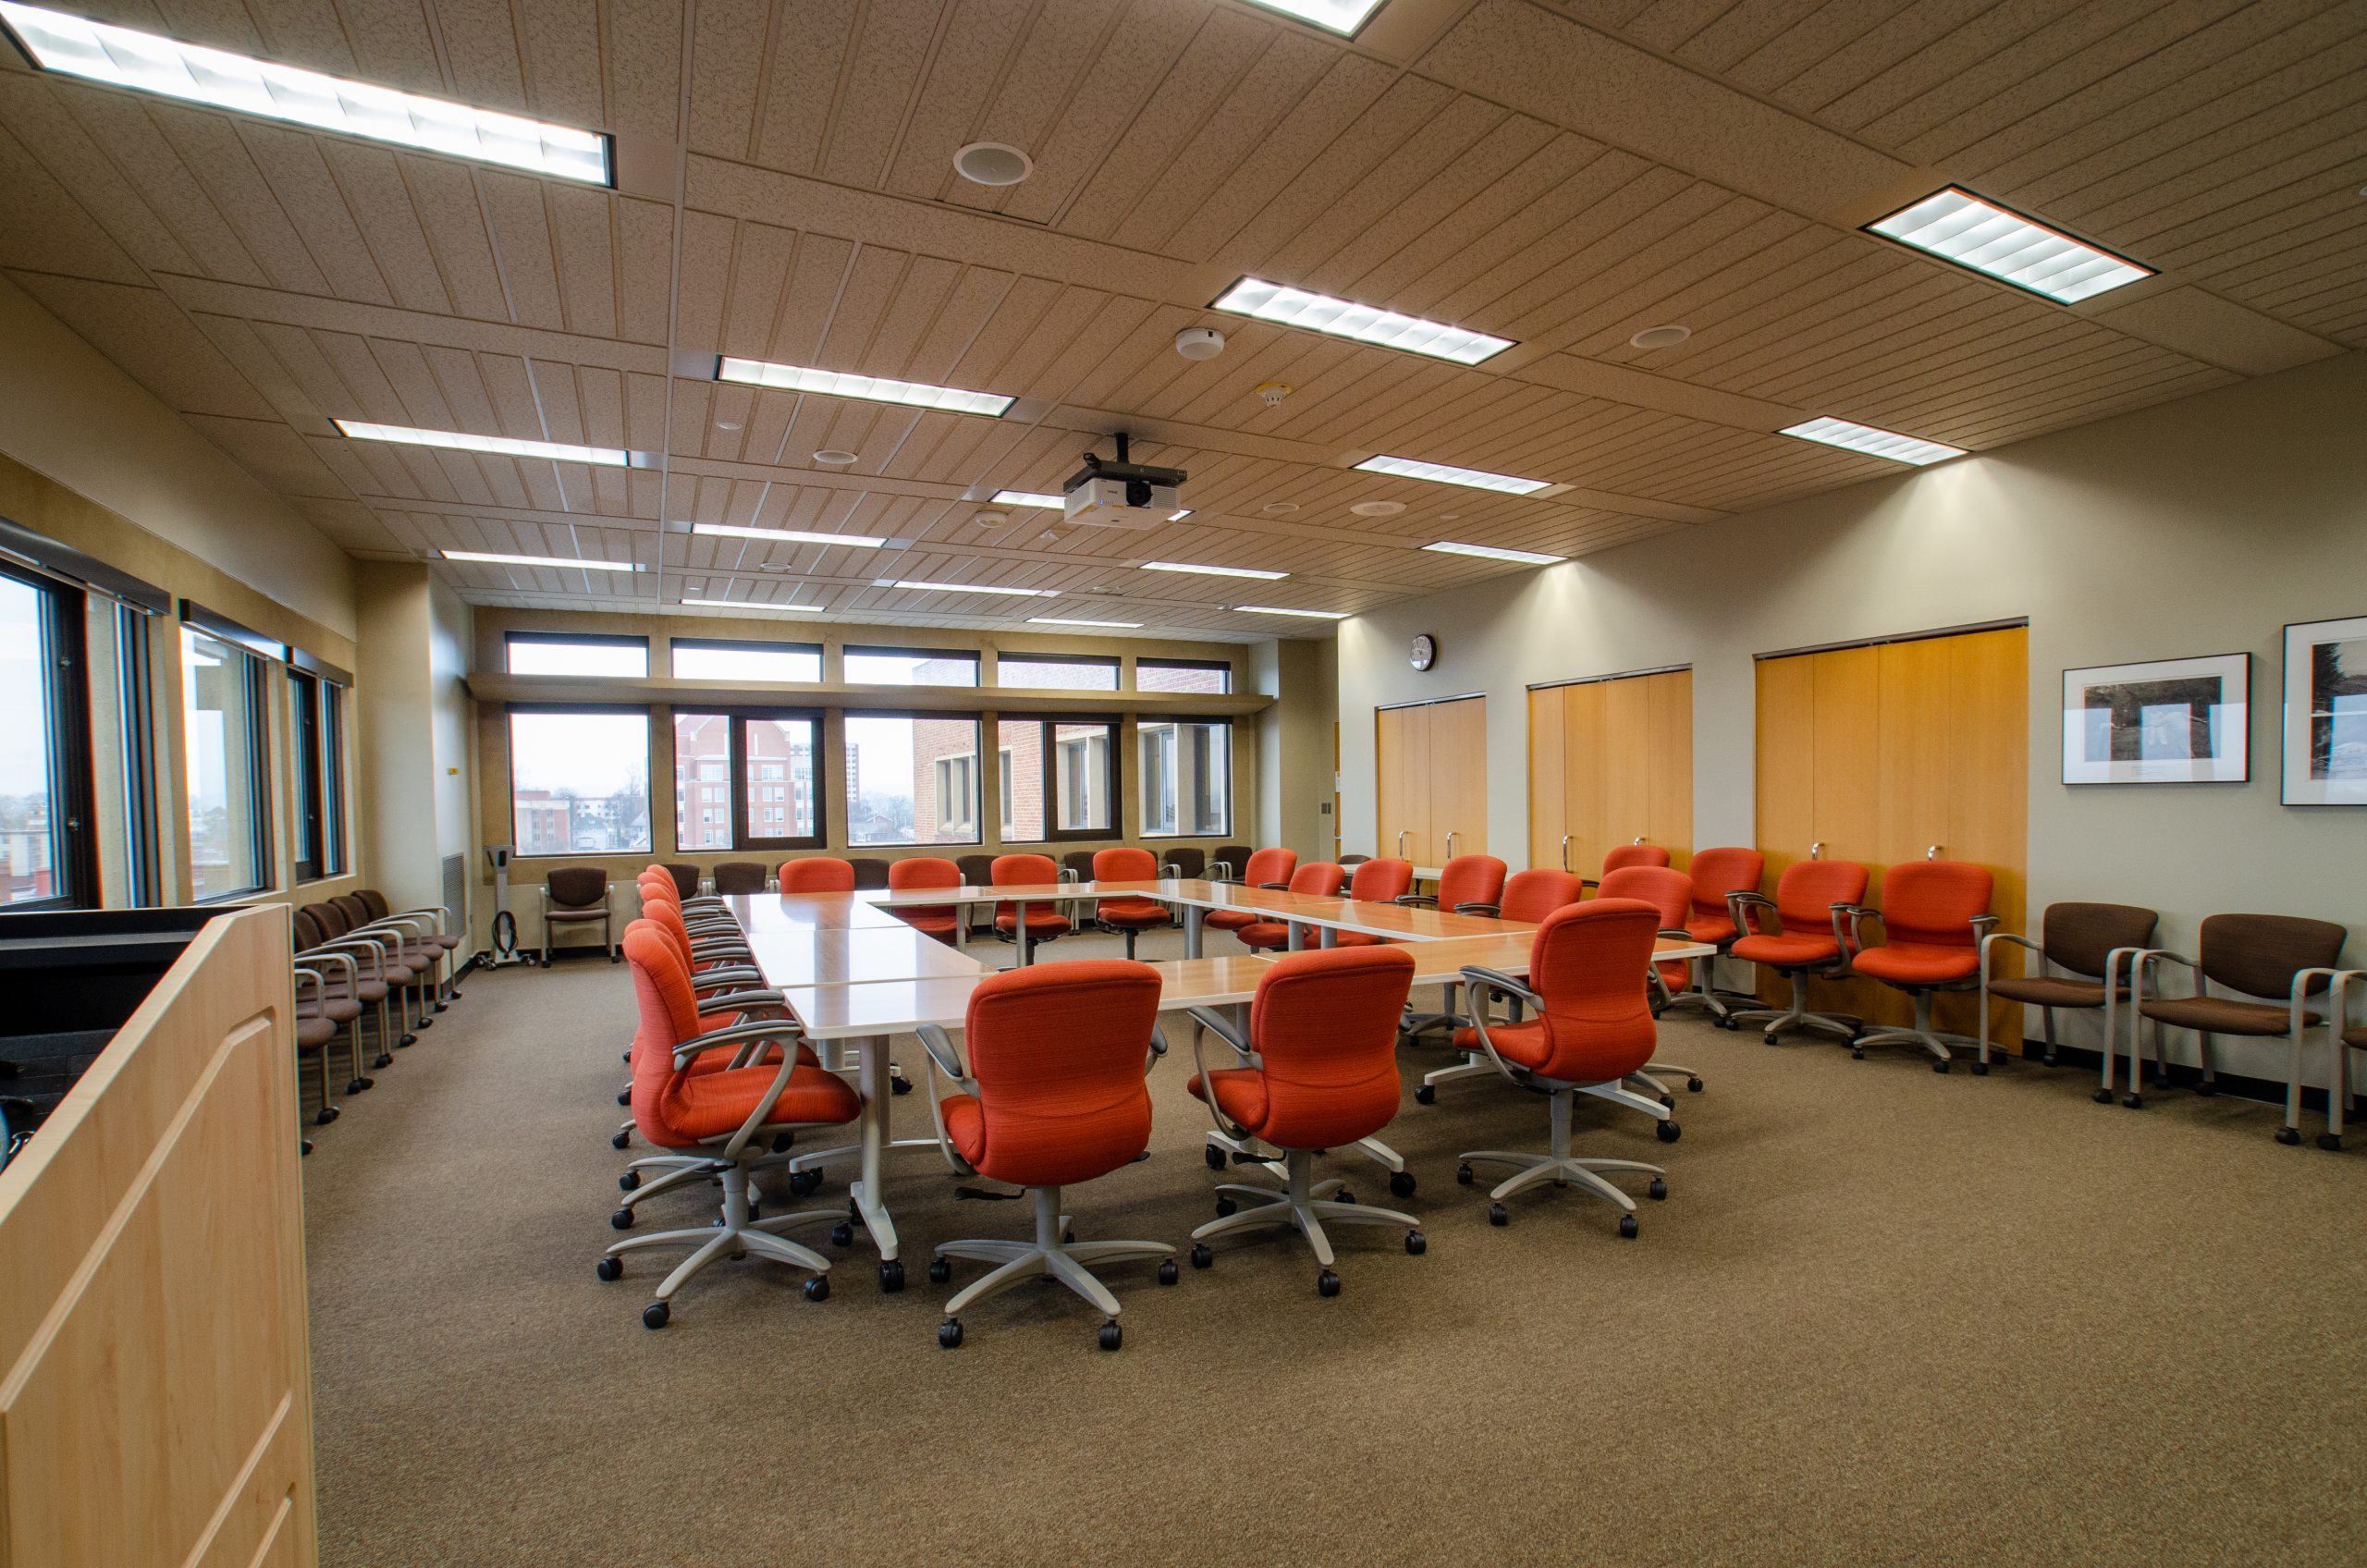 room 605 in hodges library of university of tennessee